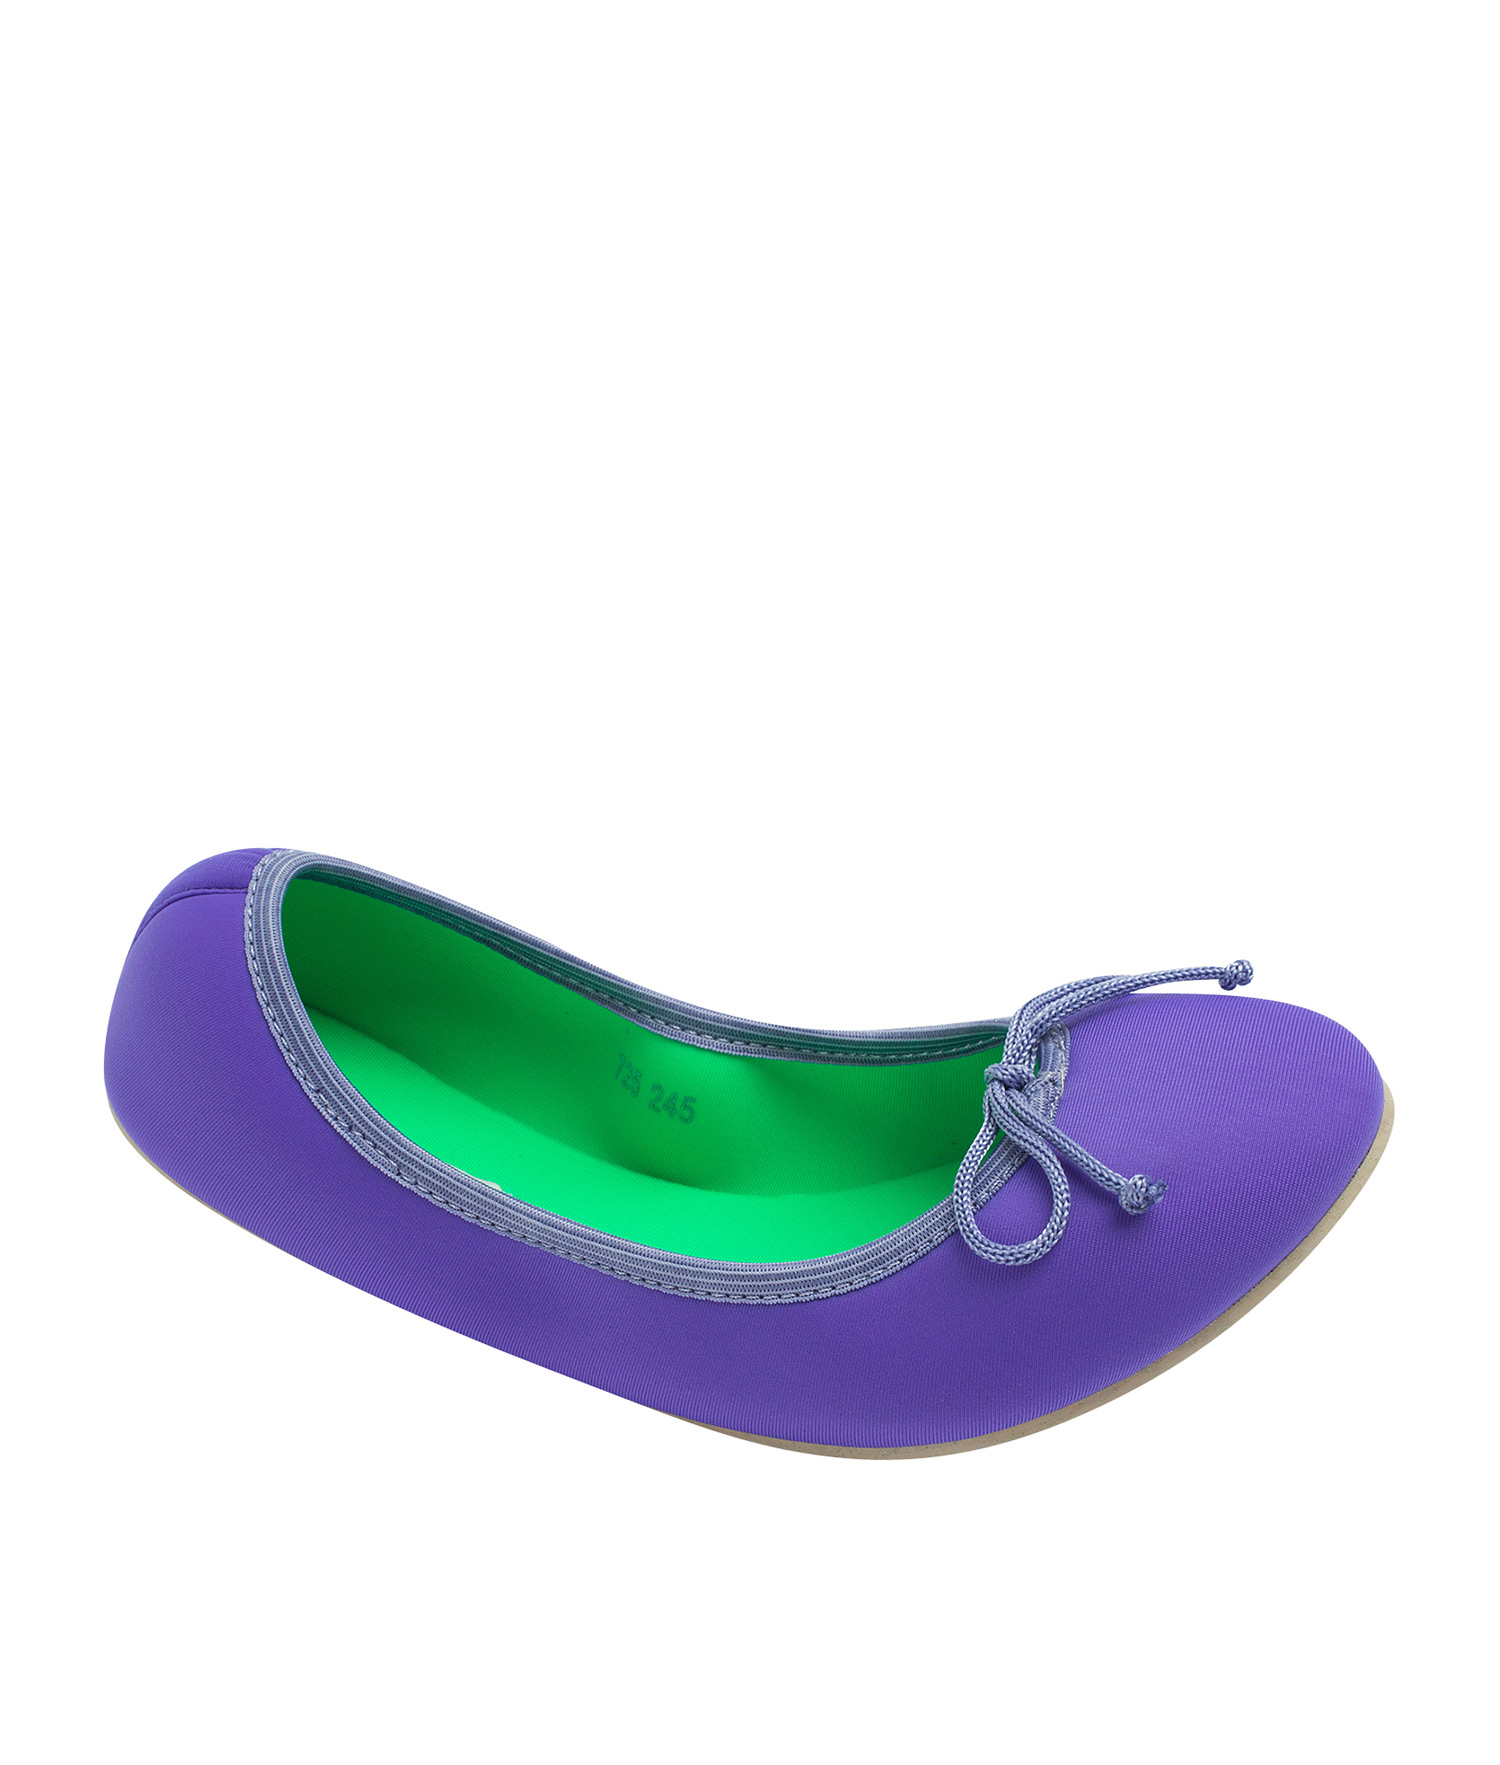 8a143b06928 AnnaKastle Womens Neoprene Foldable Ballet Flats Cool Colors Violet